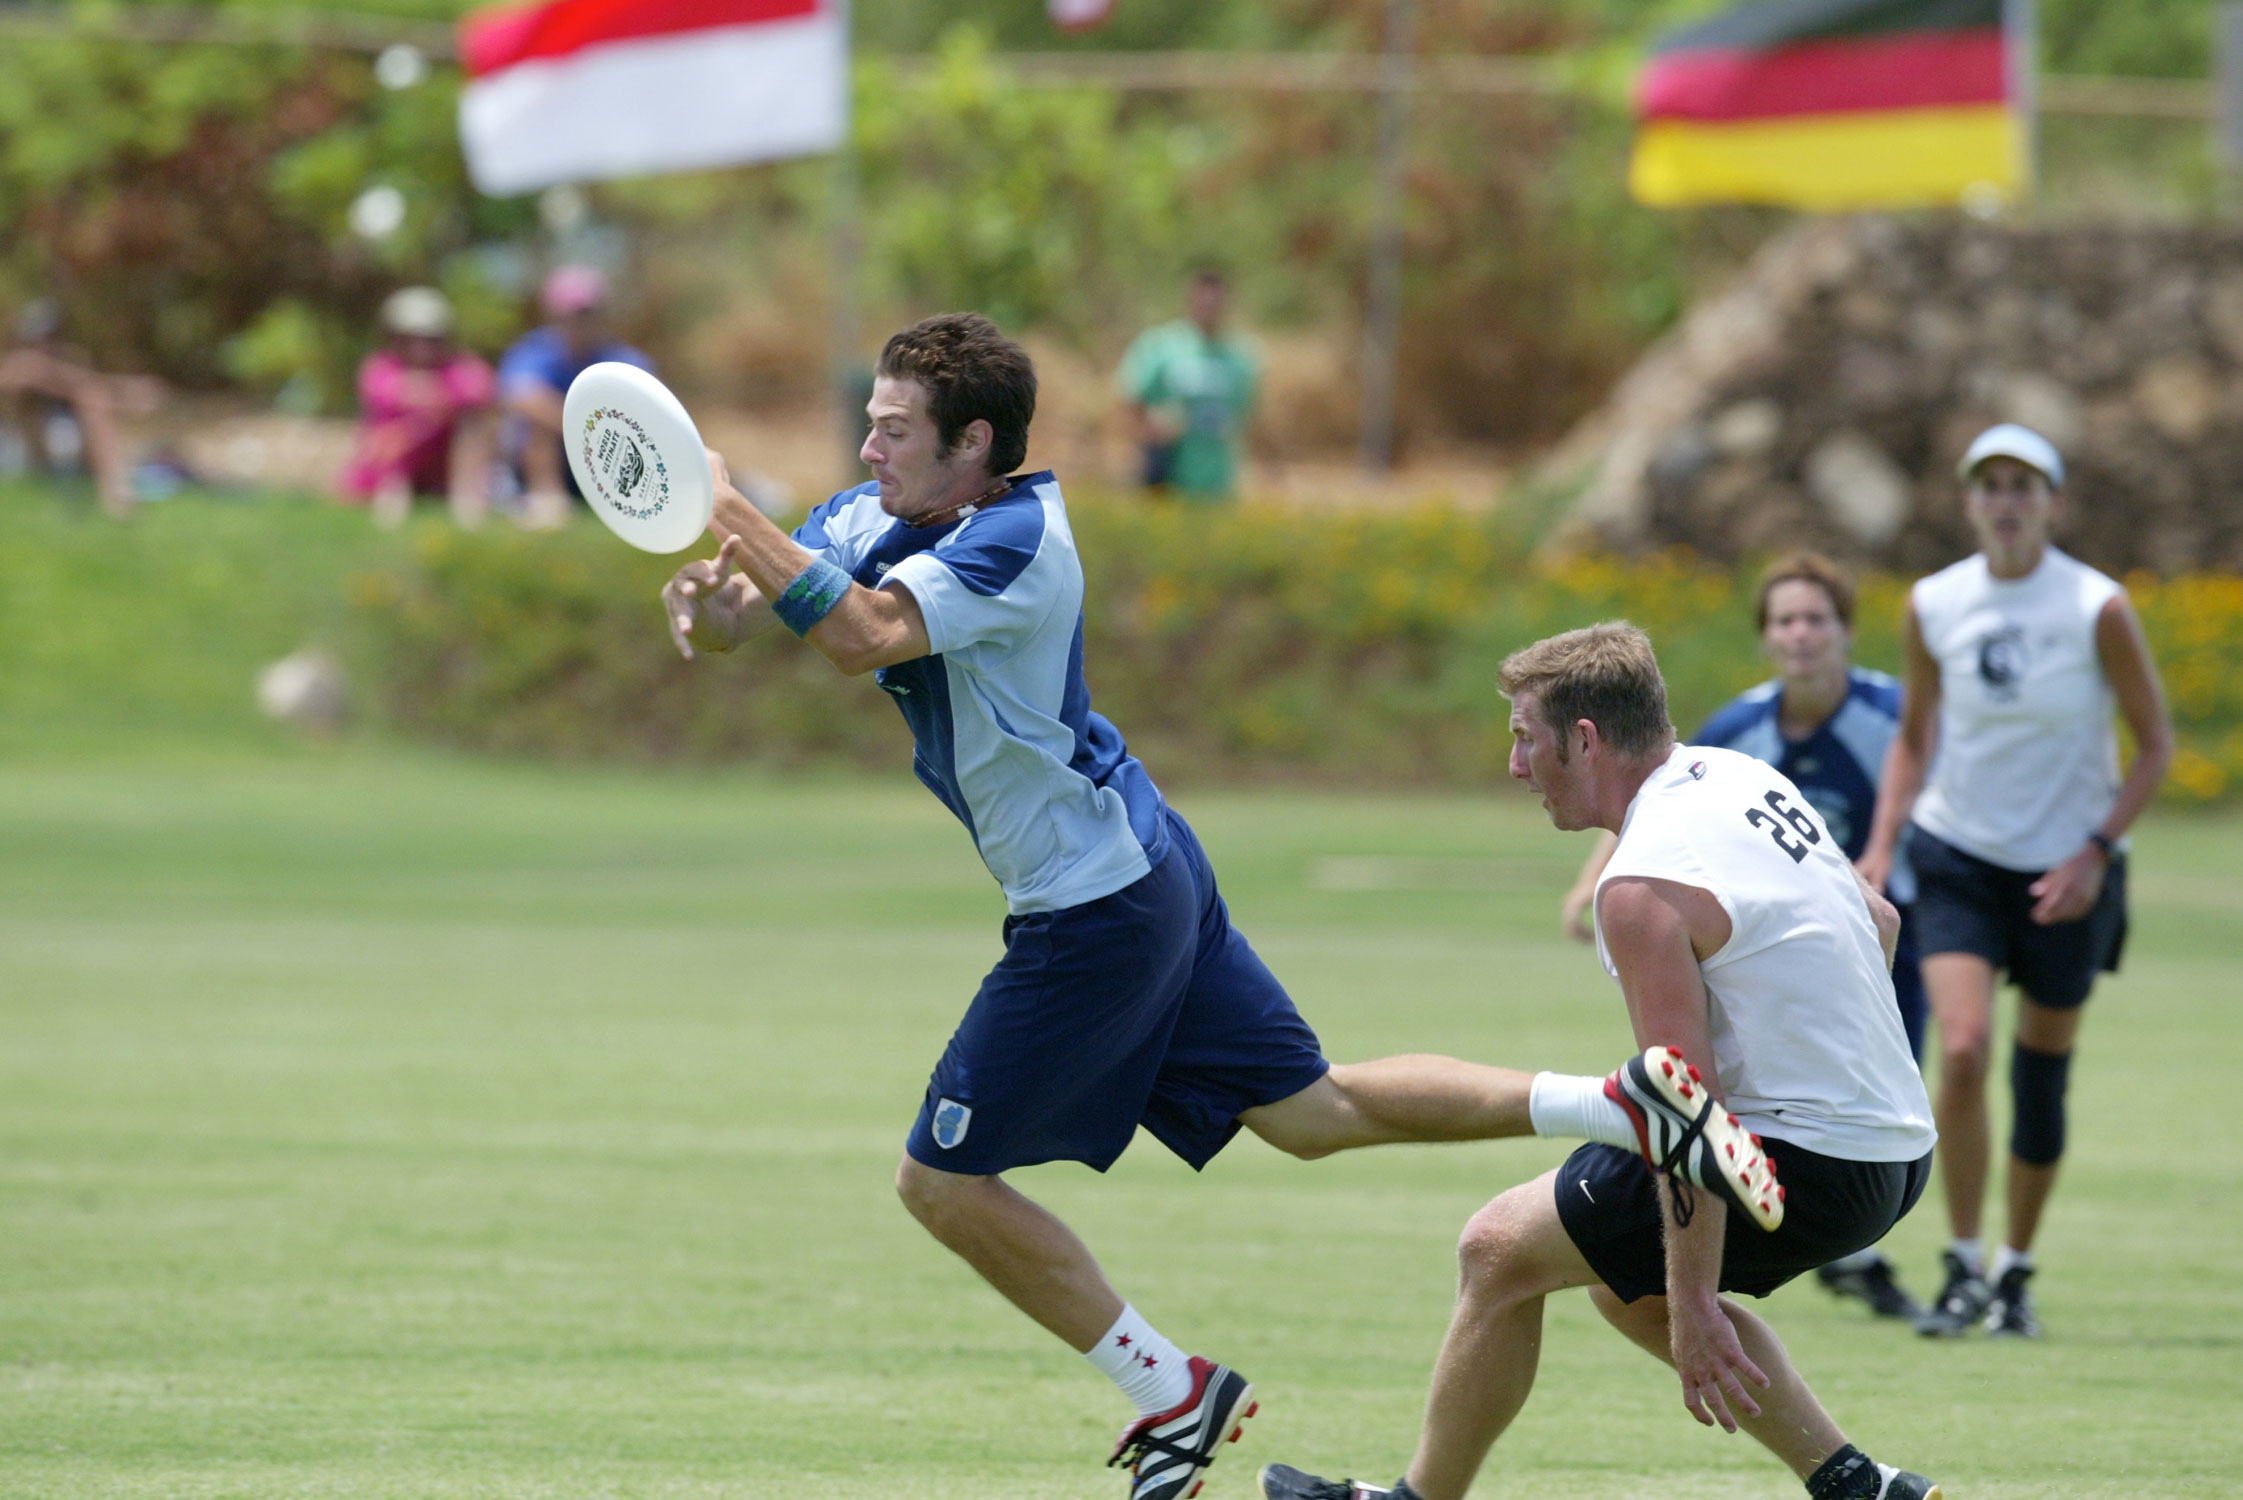 D.C.'s Ultimate Frisbee community reacts to Olympic news